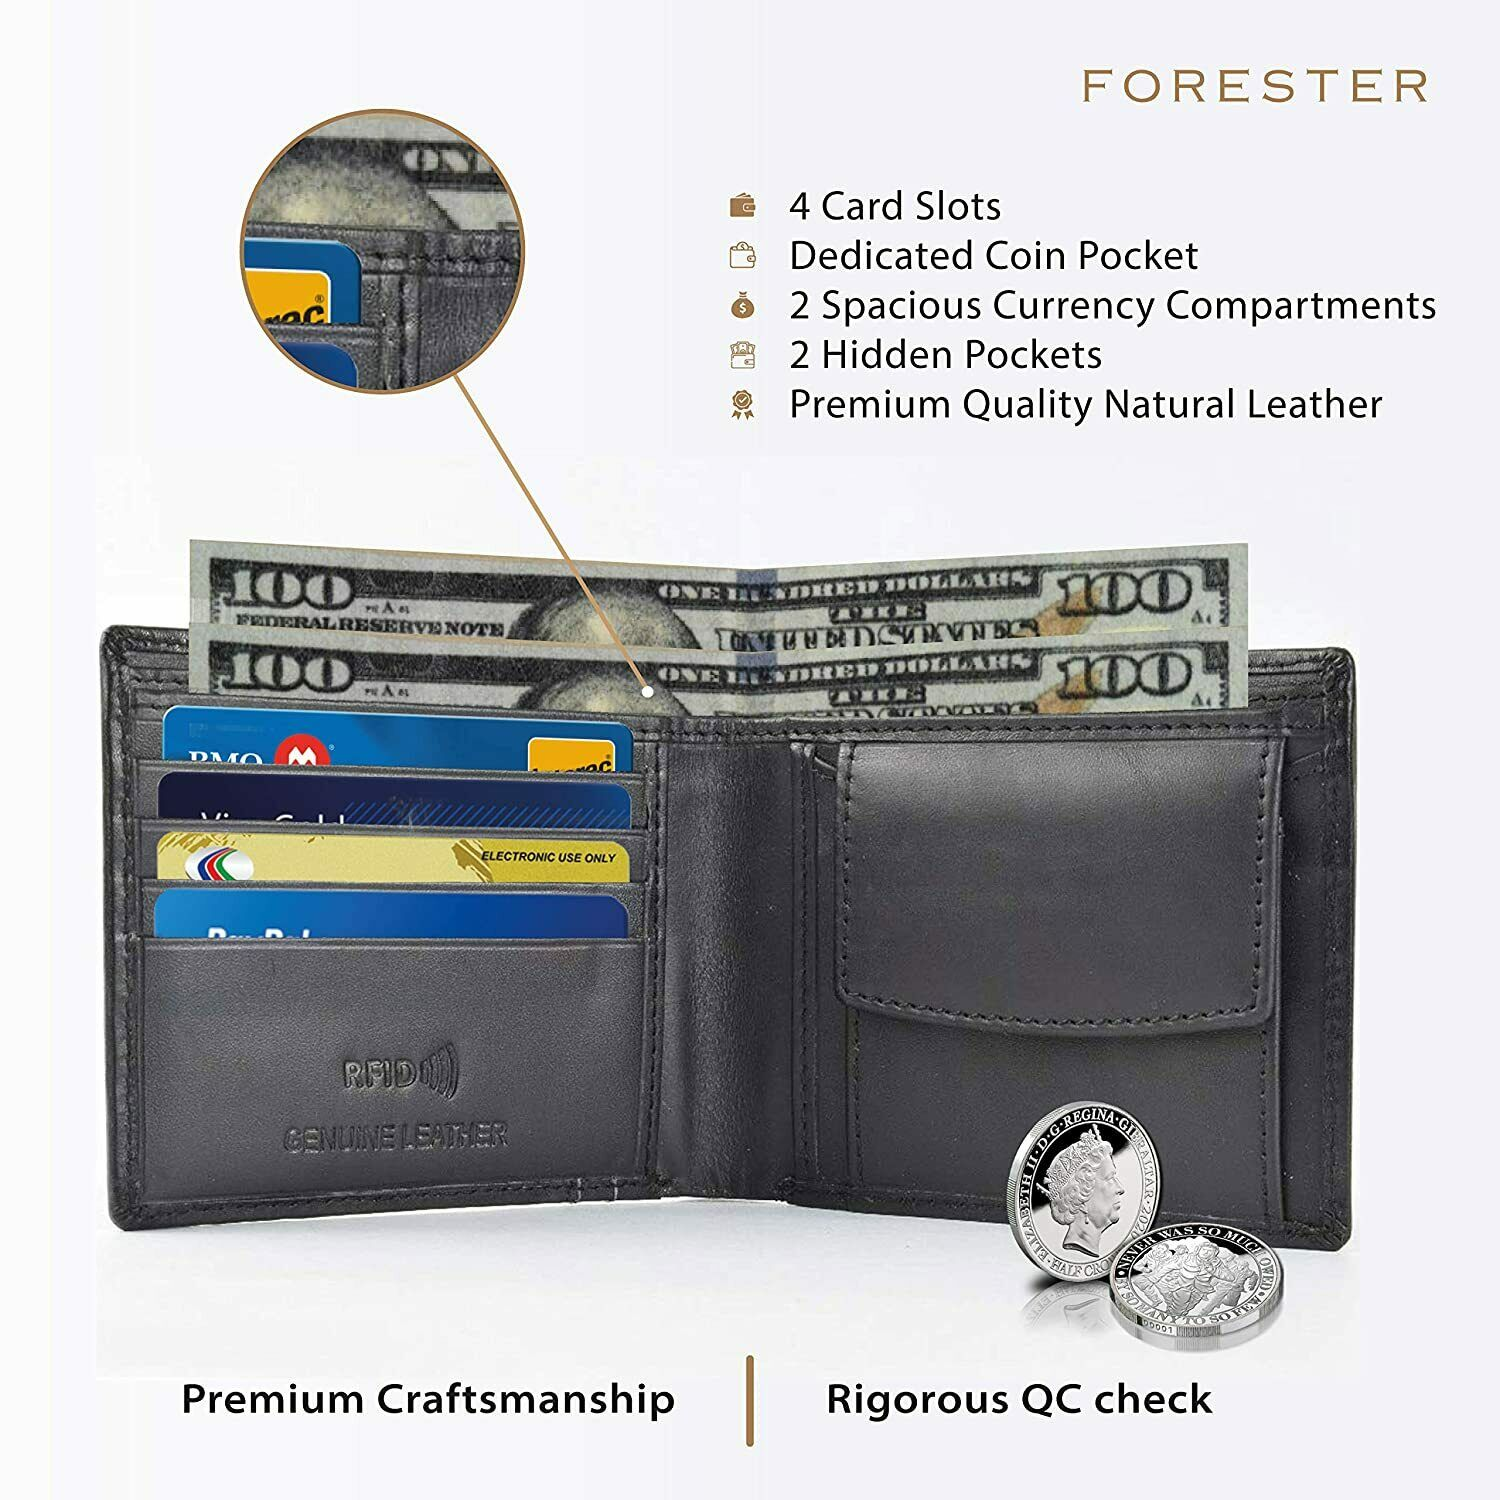 Branded Stylish Black Men's Genuine Leather Wallet/Purse by Forester